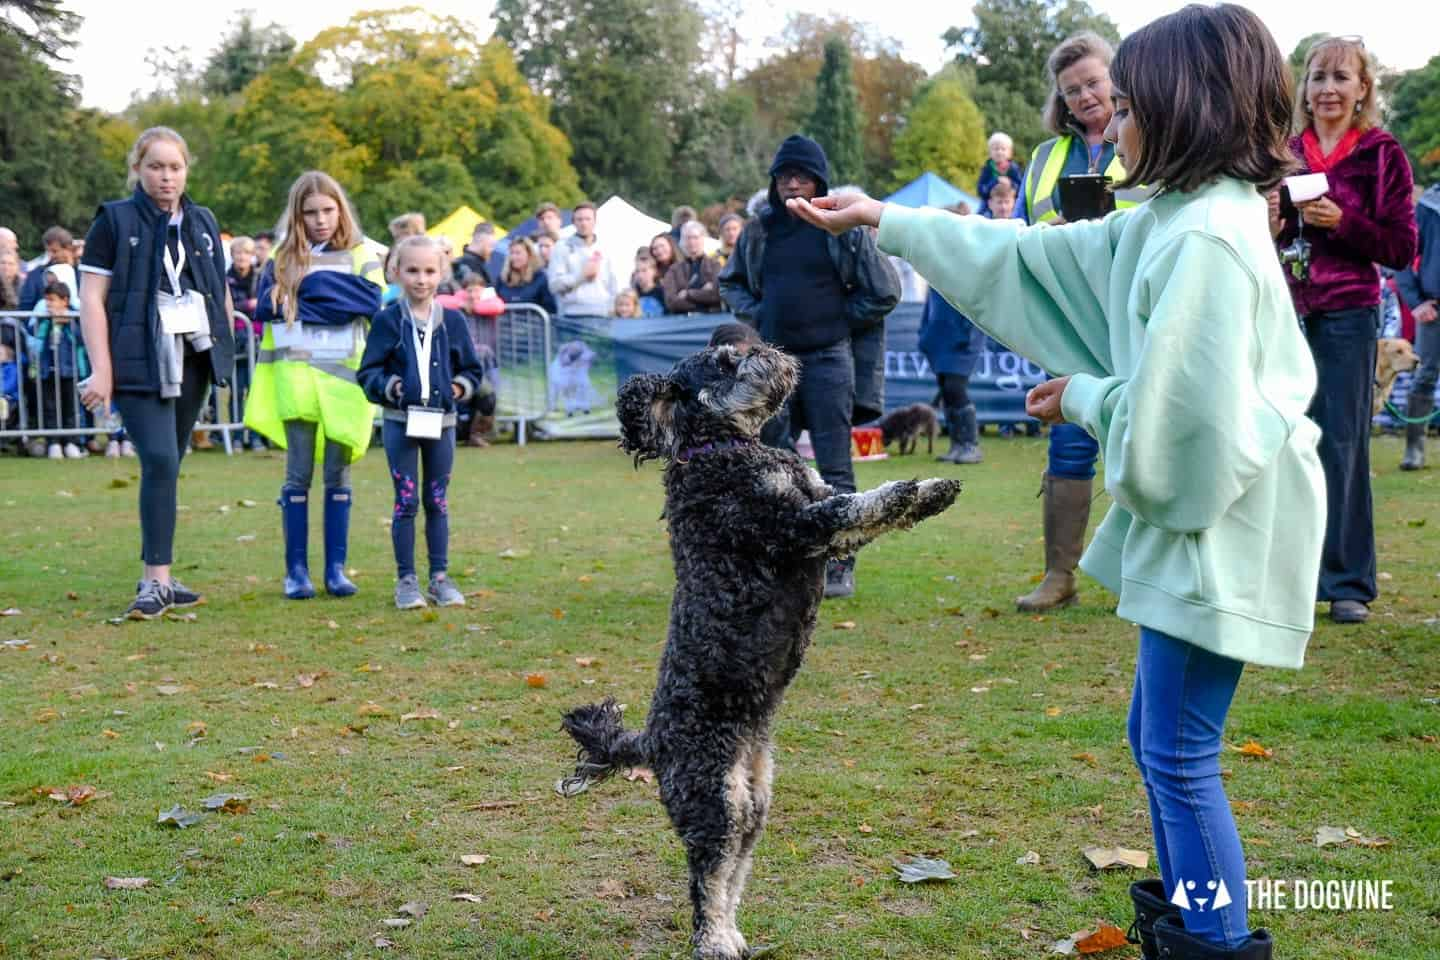 The Chiswick House Dog Show My Dog's Got Talent 10